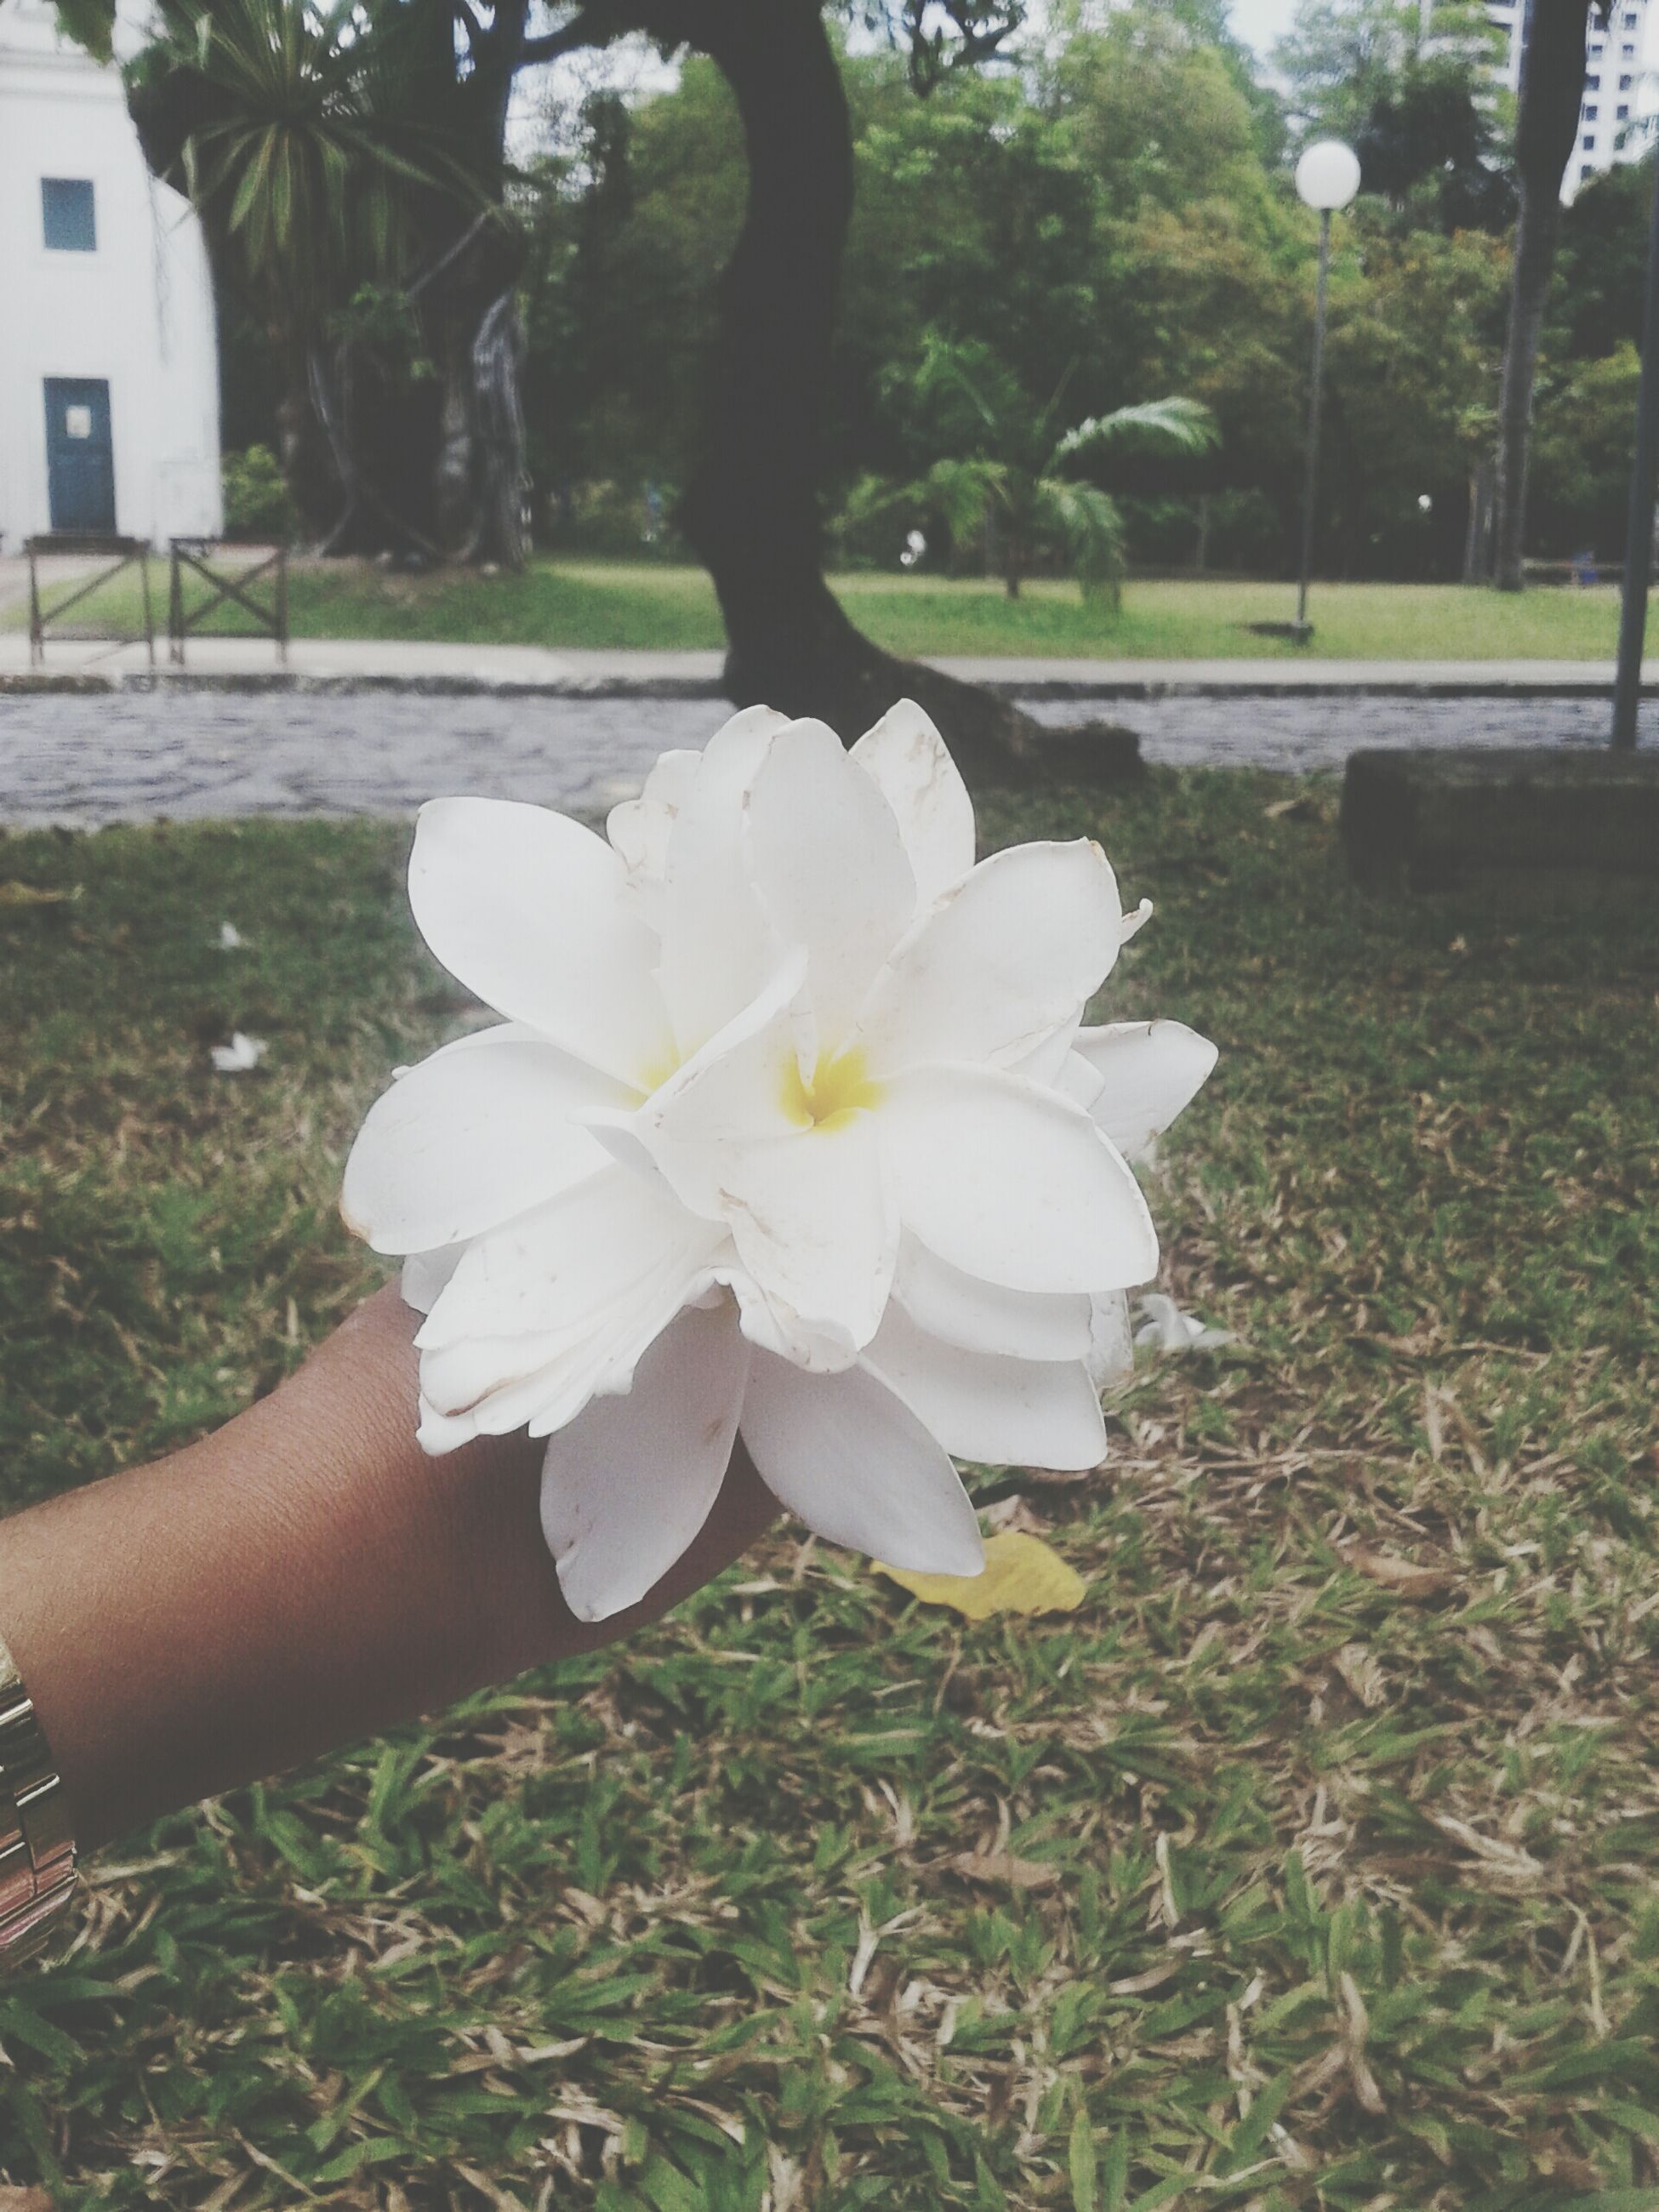 flower, person, white color, petal, holding, flower head, fragility, freshness, single flower, part of, focus on foreground, growth, tree, unrecognizable person, park - man made space, cropped, white